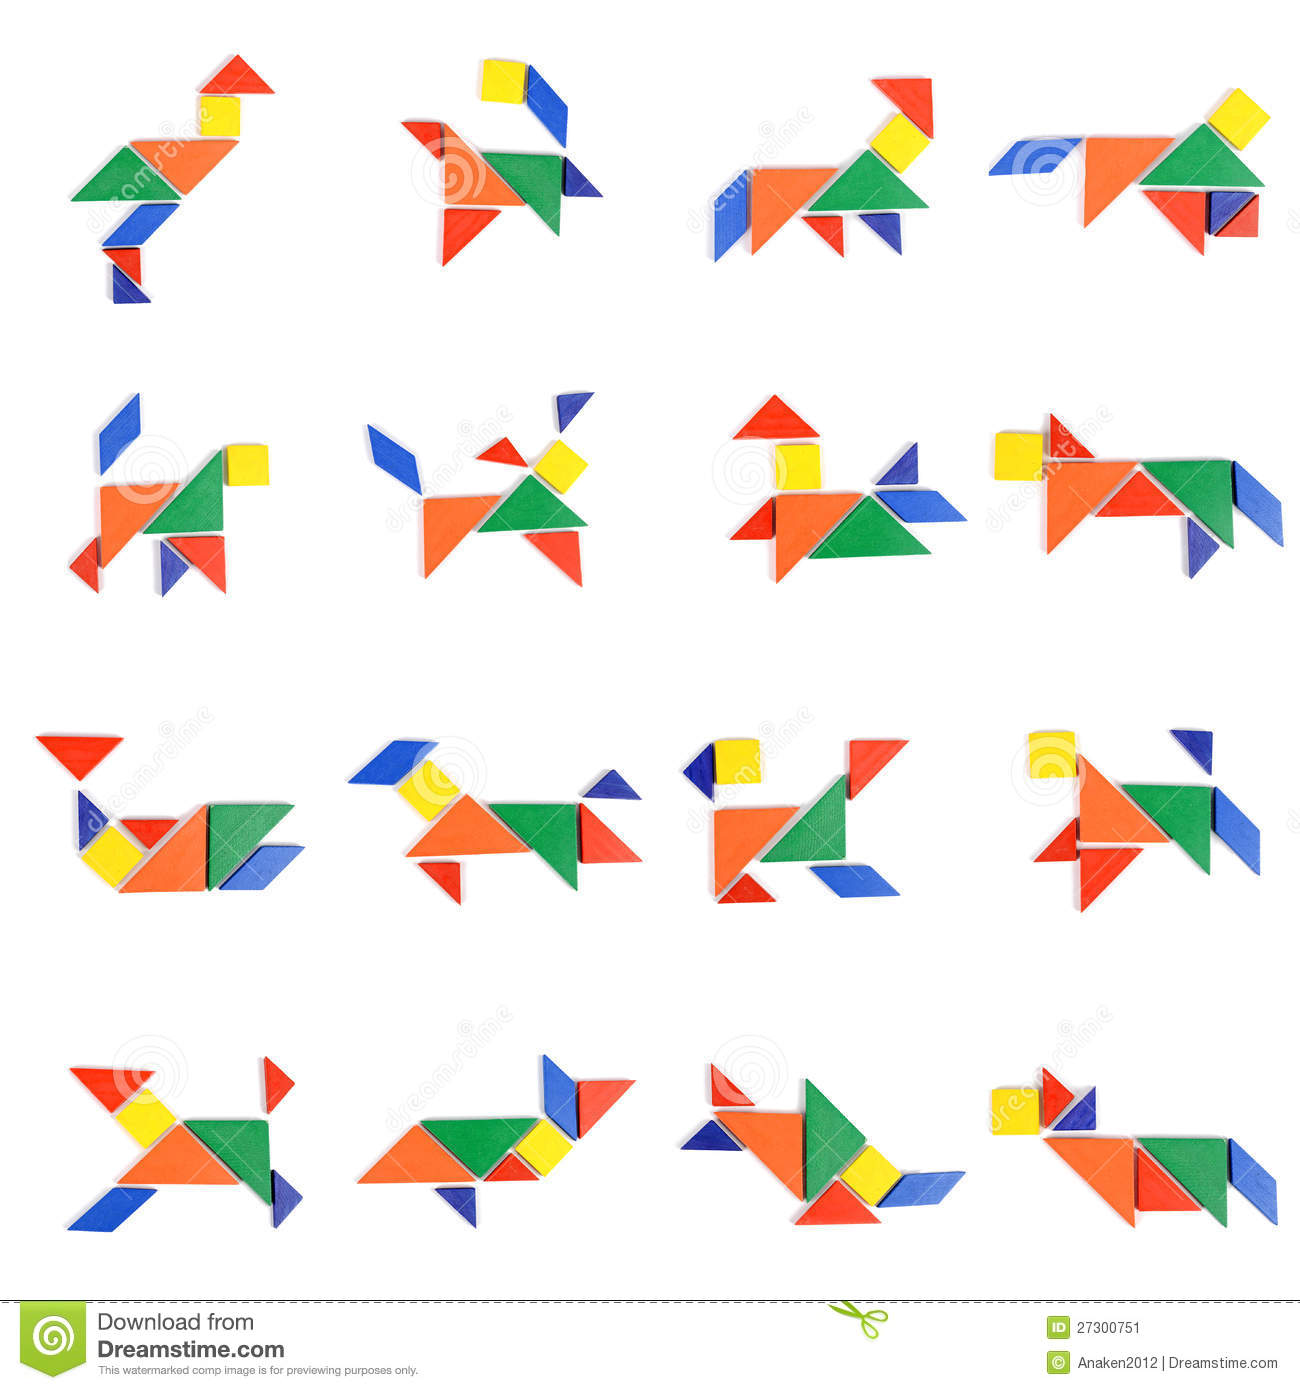 Tangram People Icon Stock Image - Image: 27300751